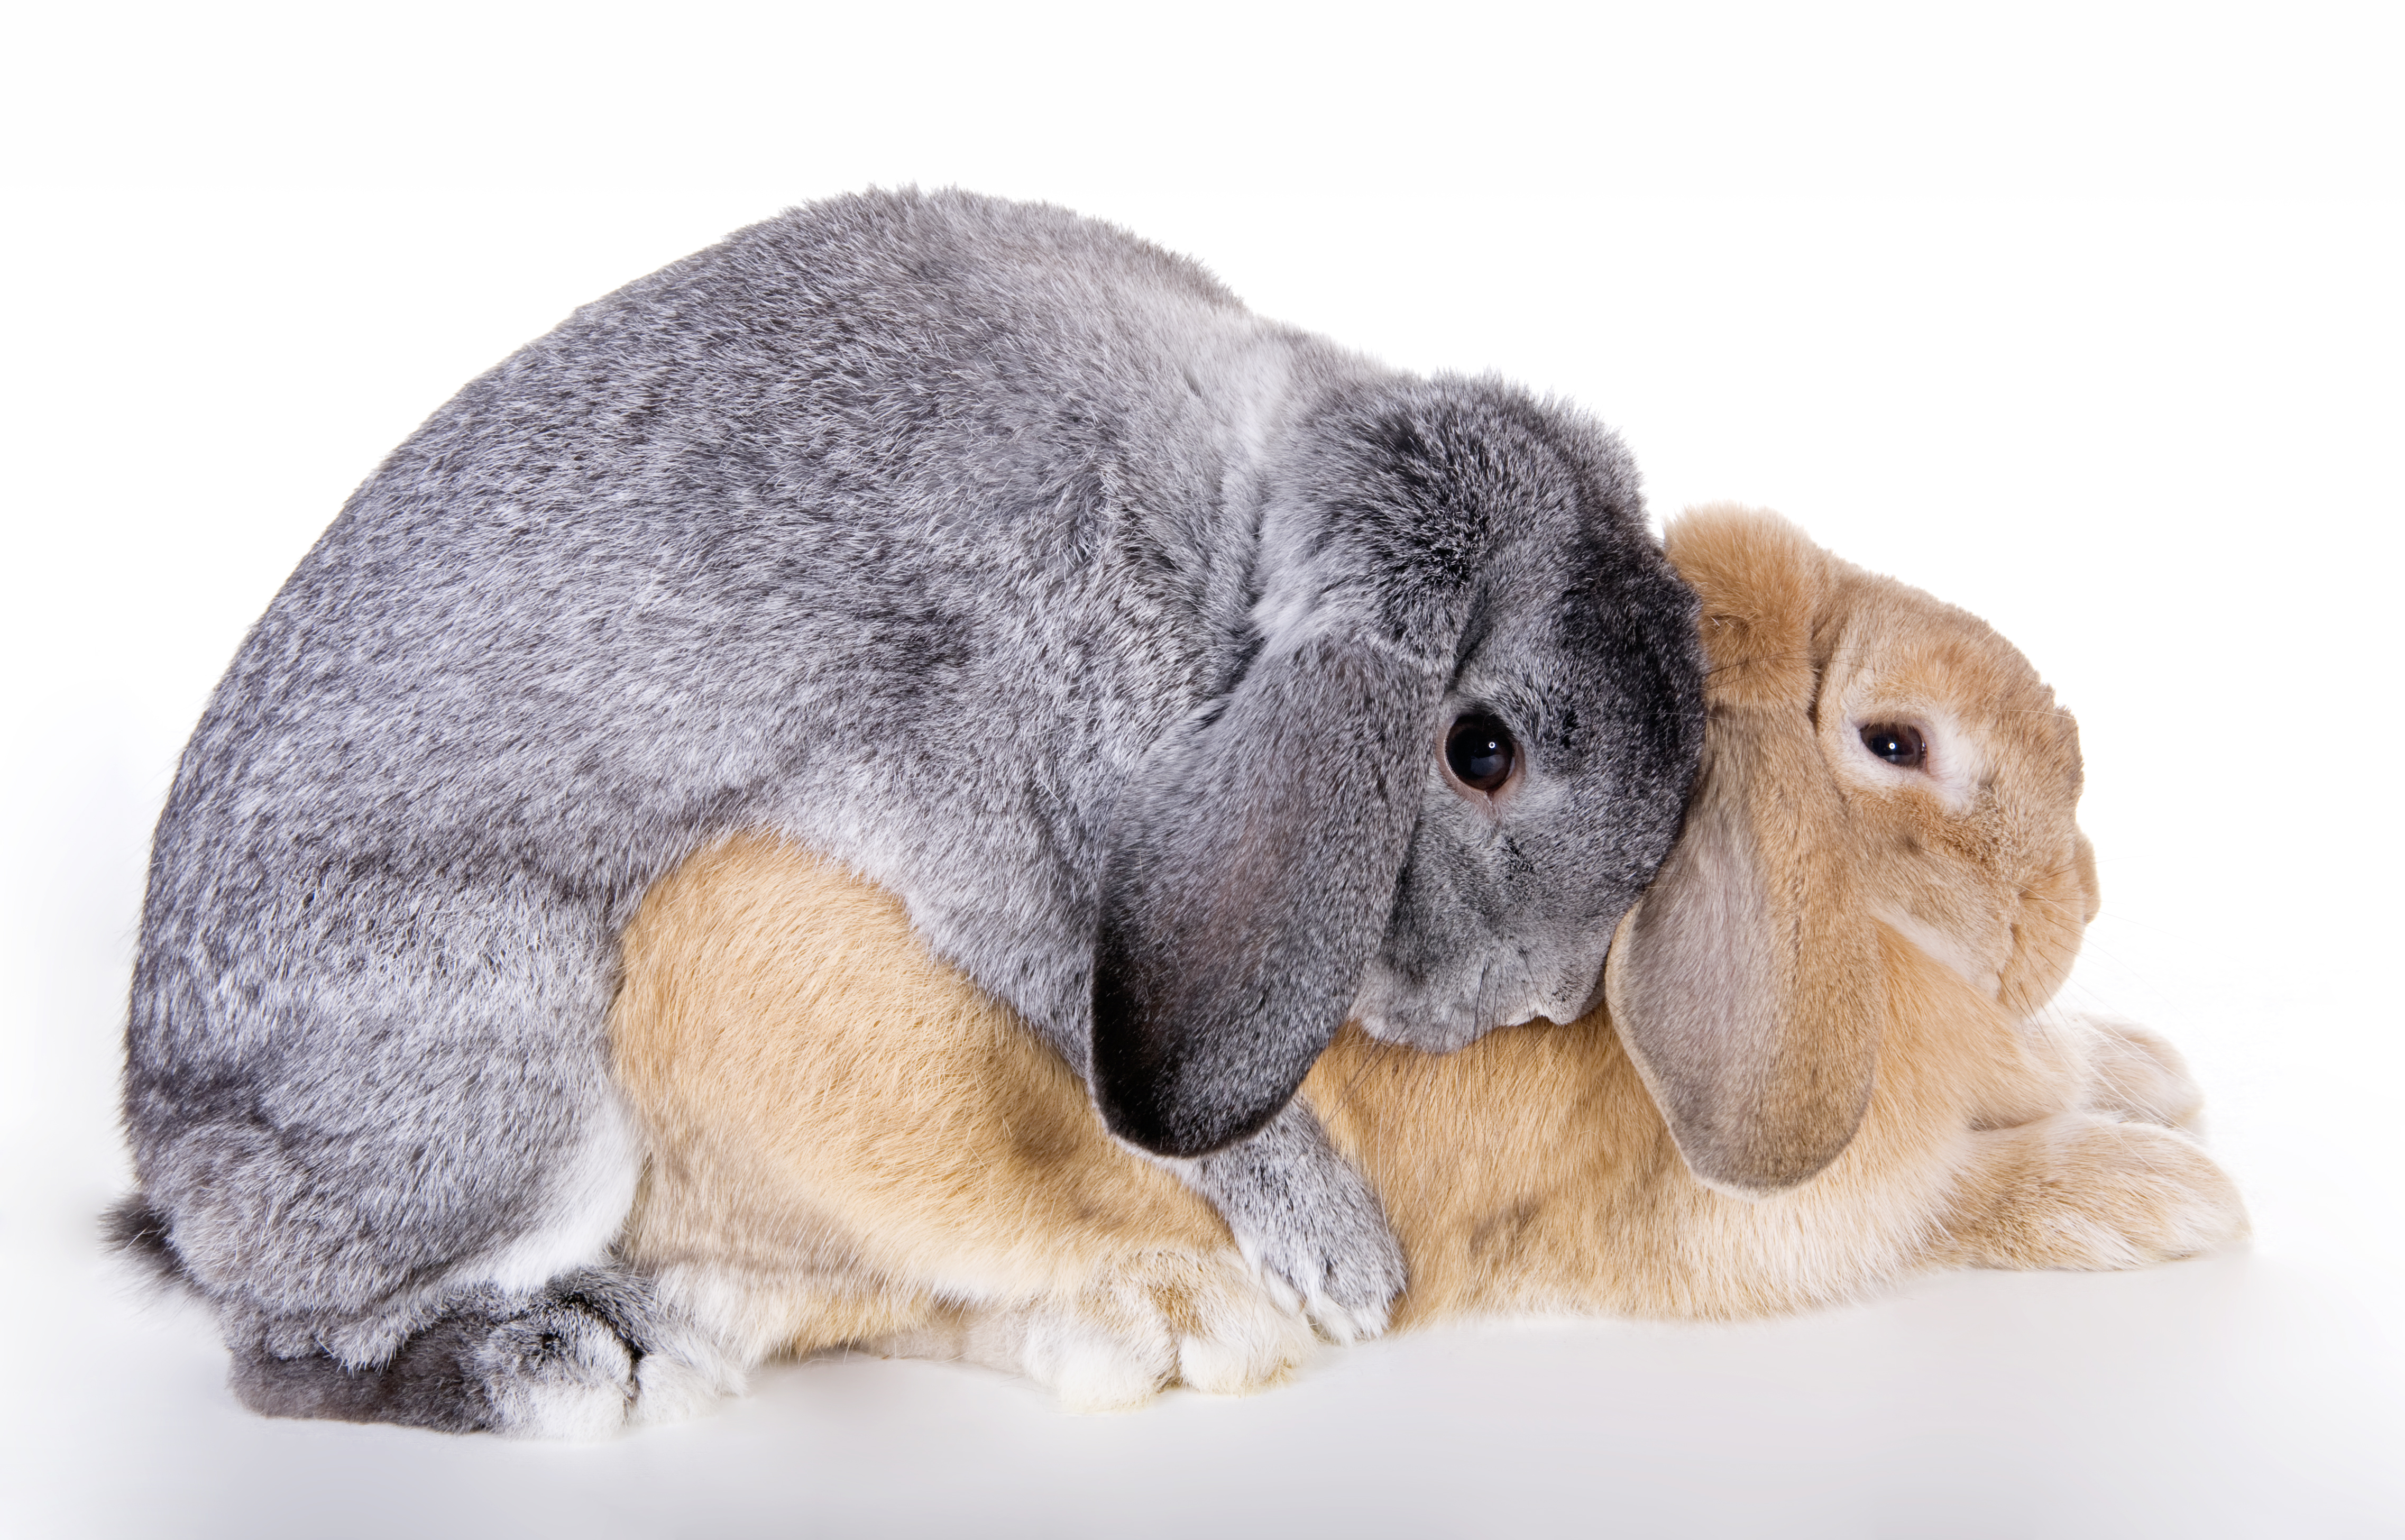 sexing-lop-rabbits-when-do-they-mature